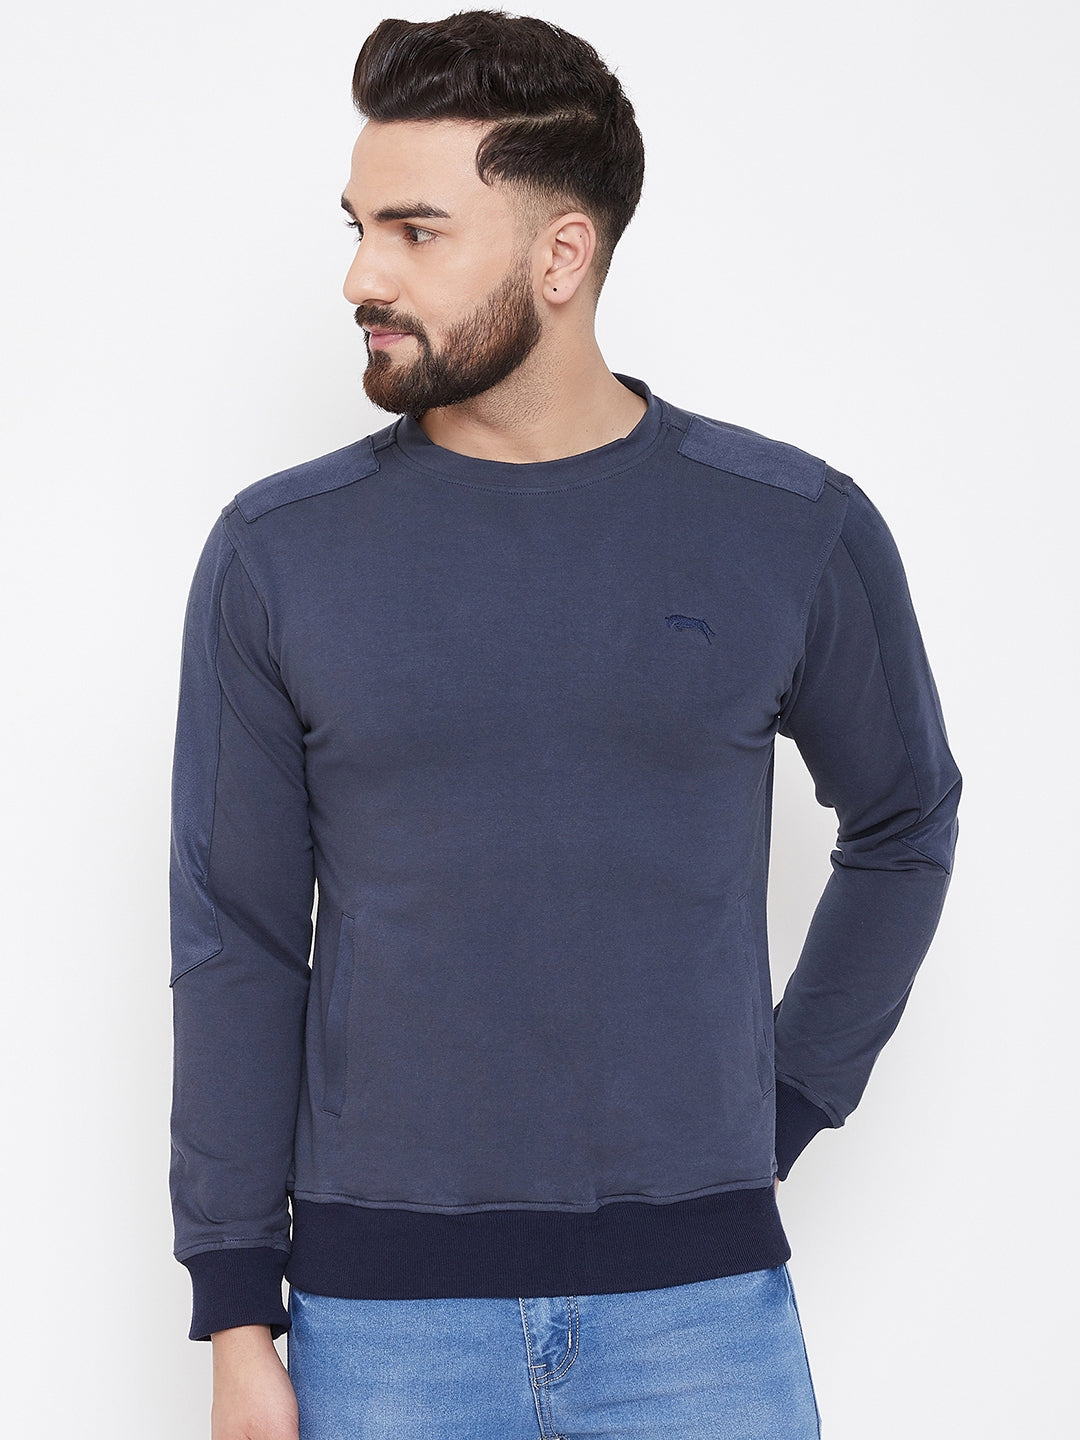 JUMP USA Men Navy Blue Solid Sweatshirt - JUMP USA